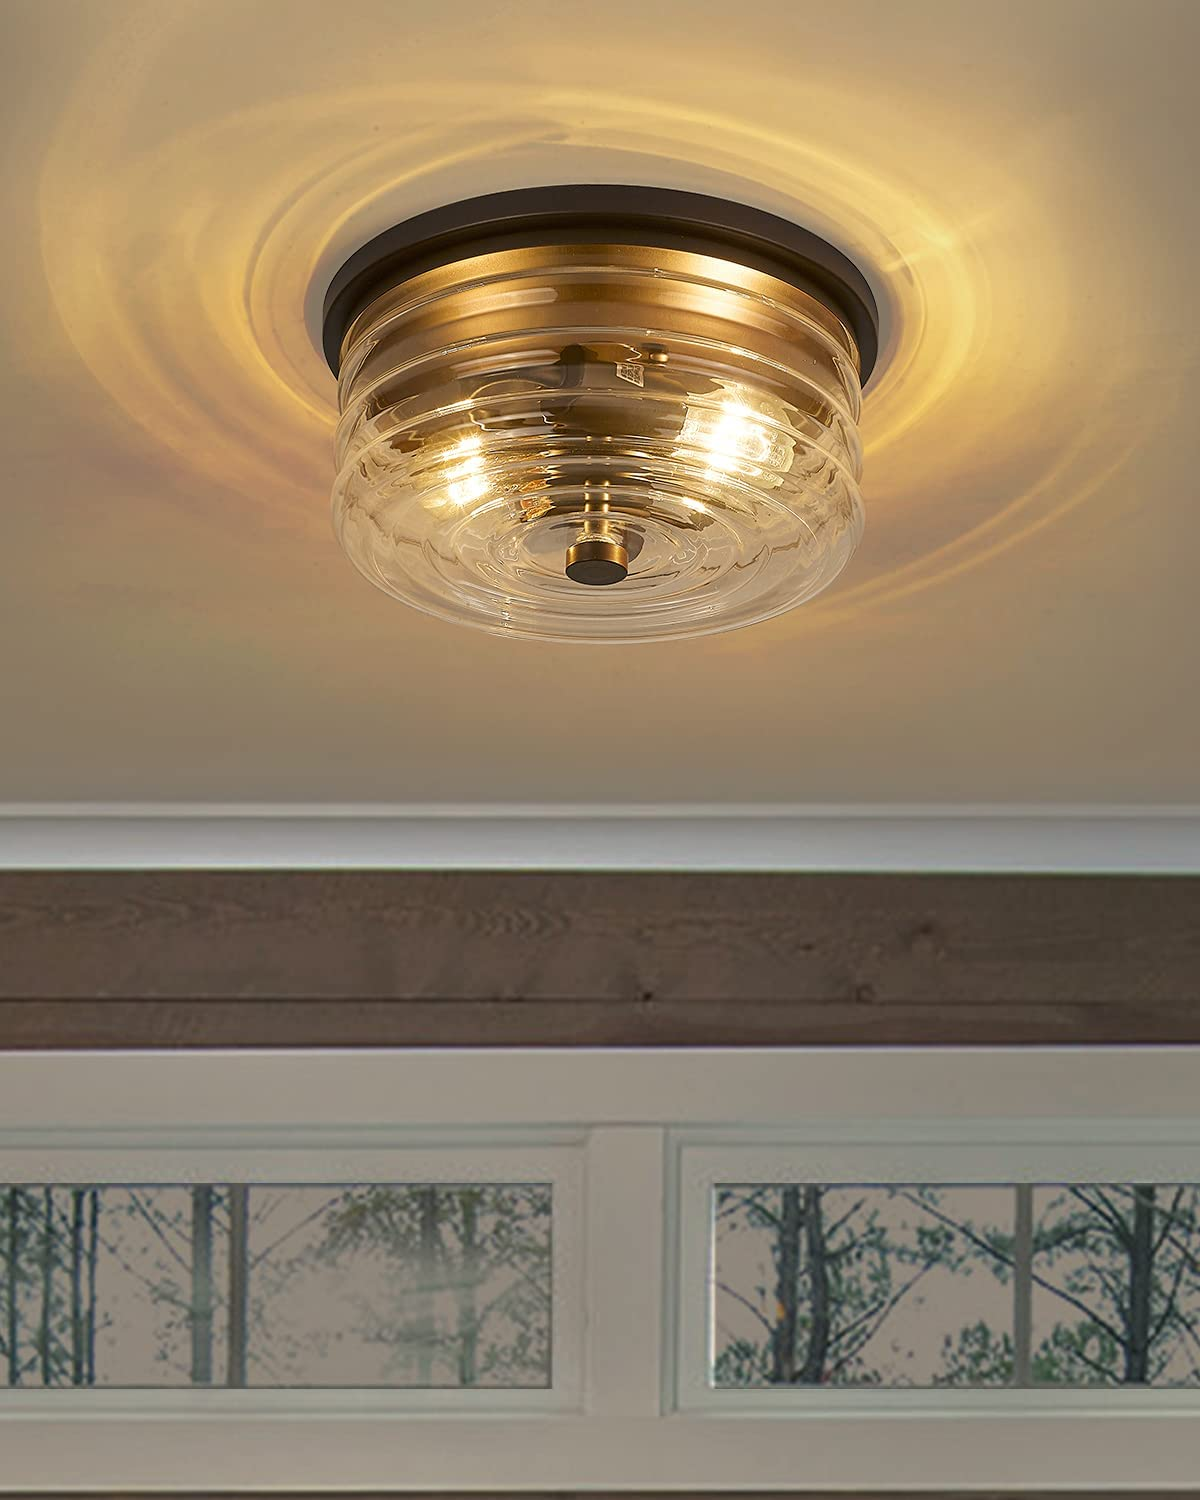 11'' Farmhouse Close Bombing new work to Ceiling Light Fixtures Vintage Flu Max 47% OFF - HWH